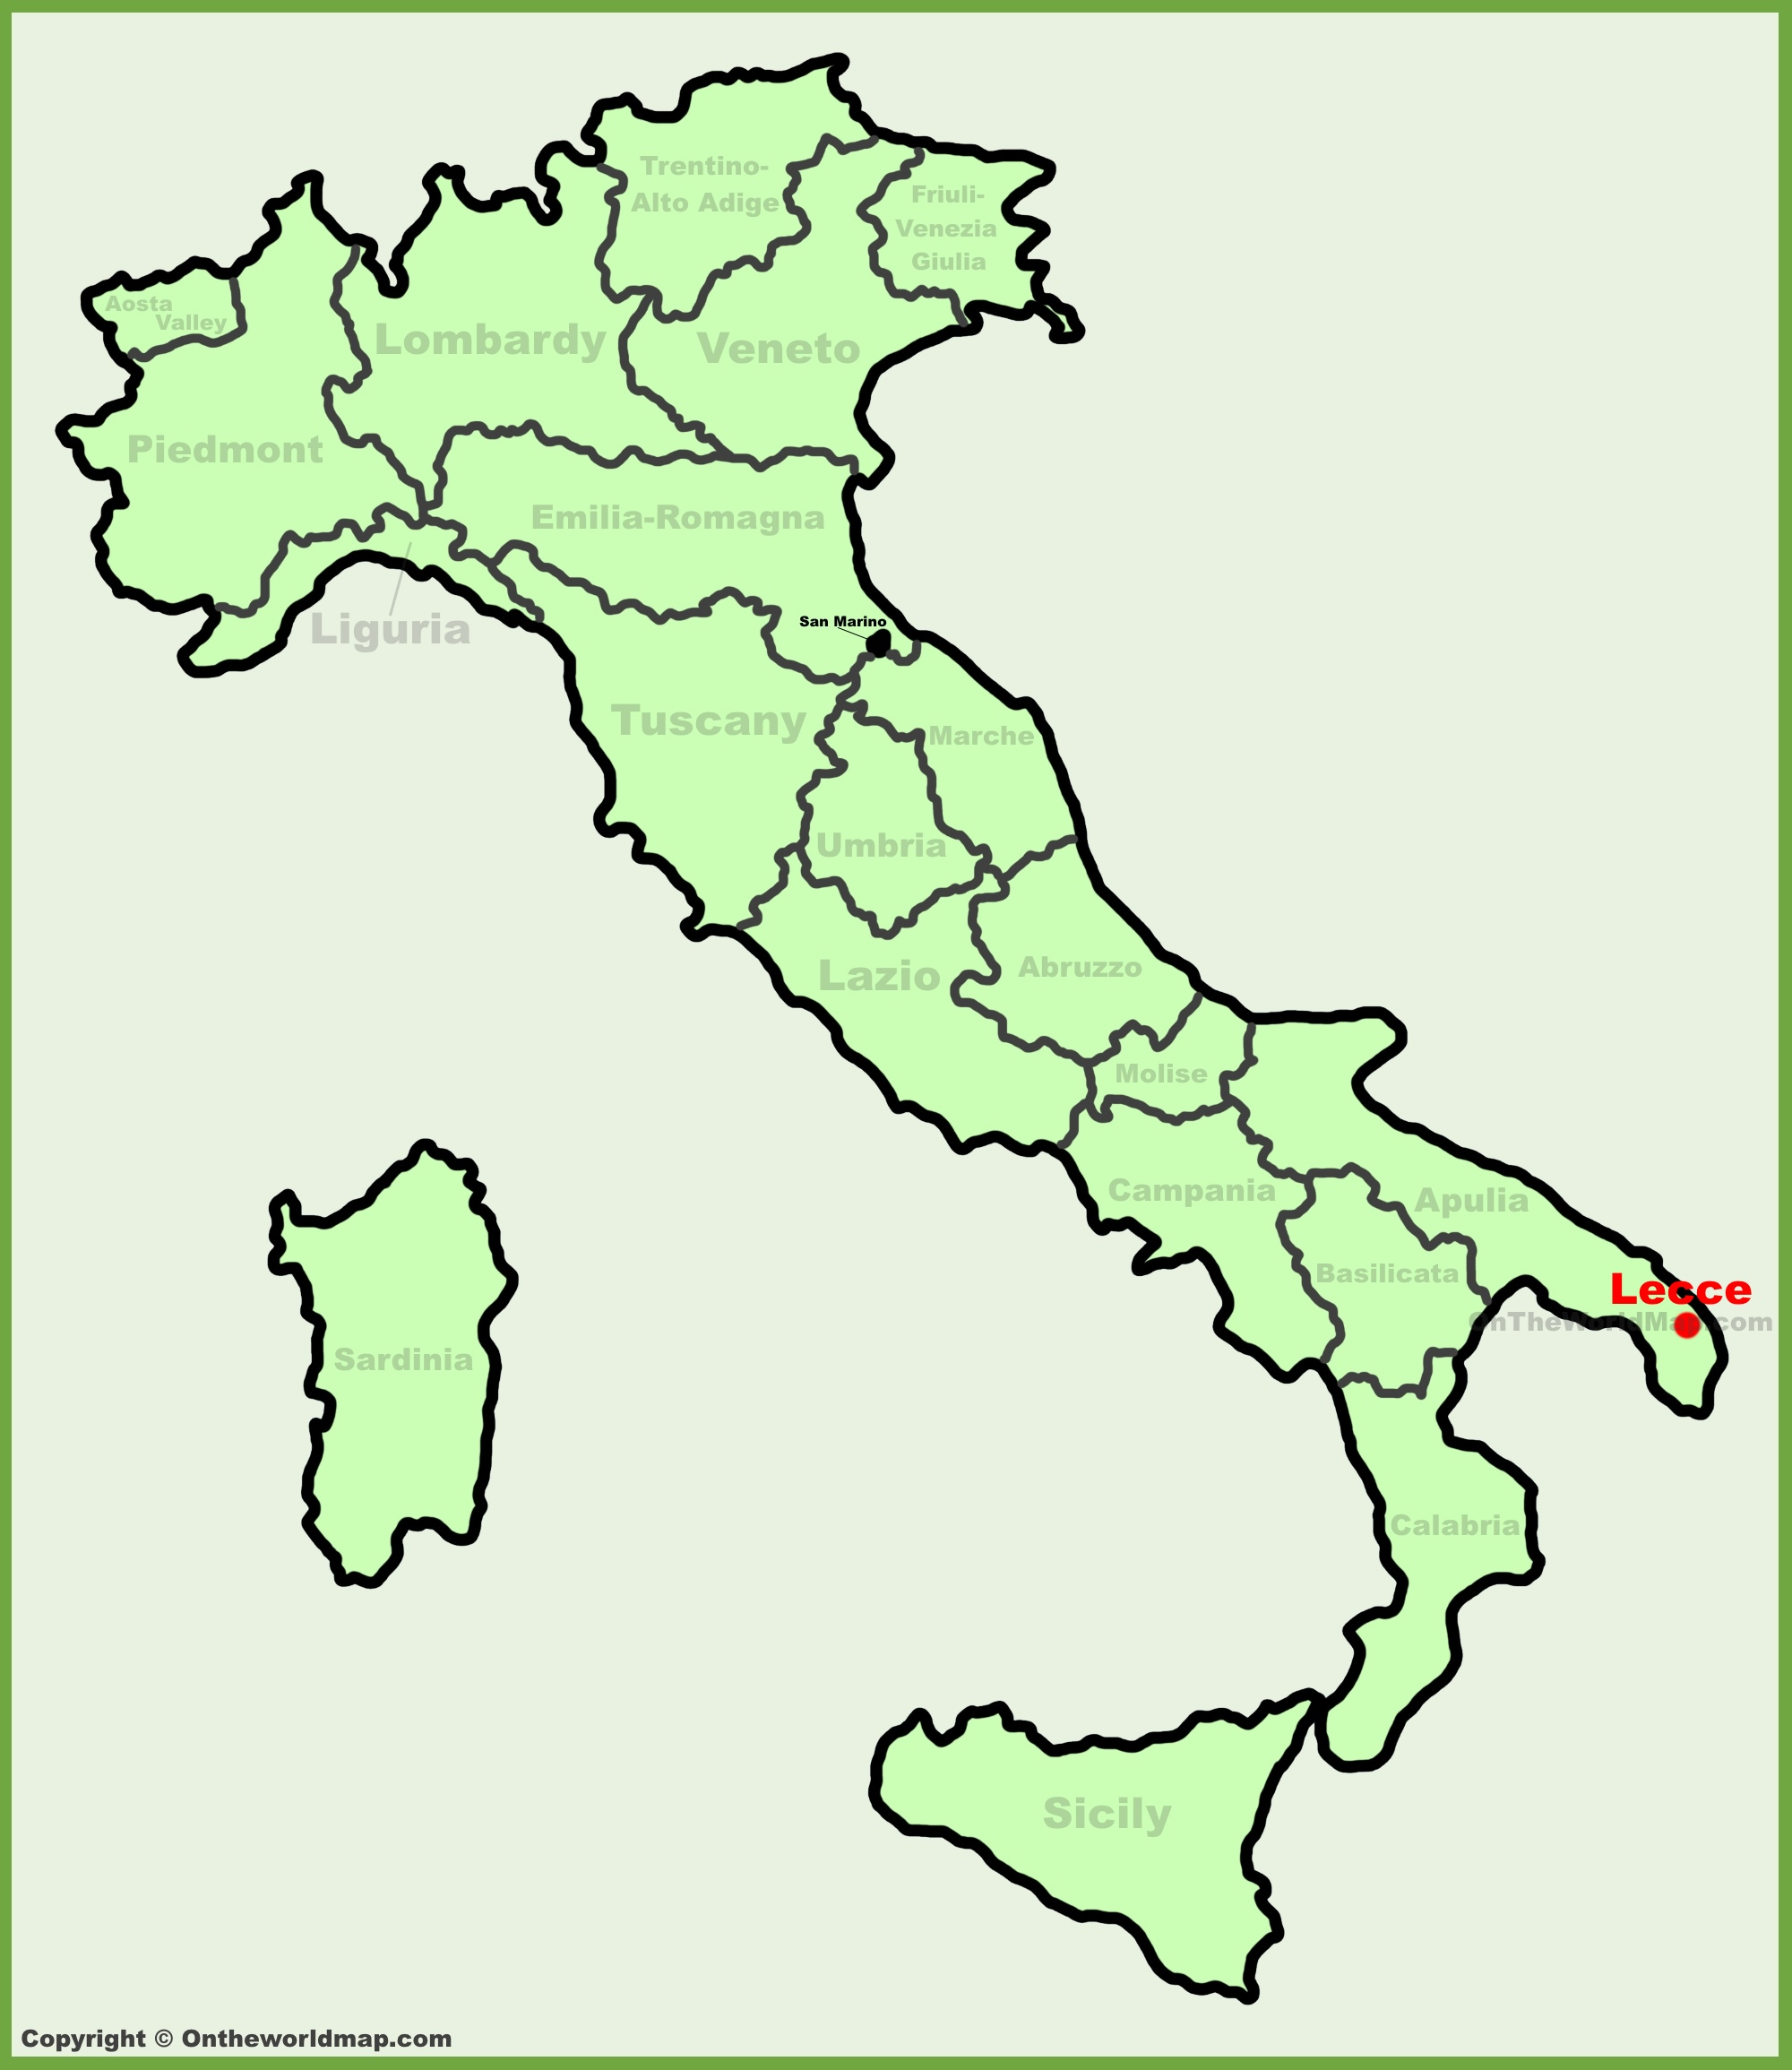 Lecce location on the Italy map